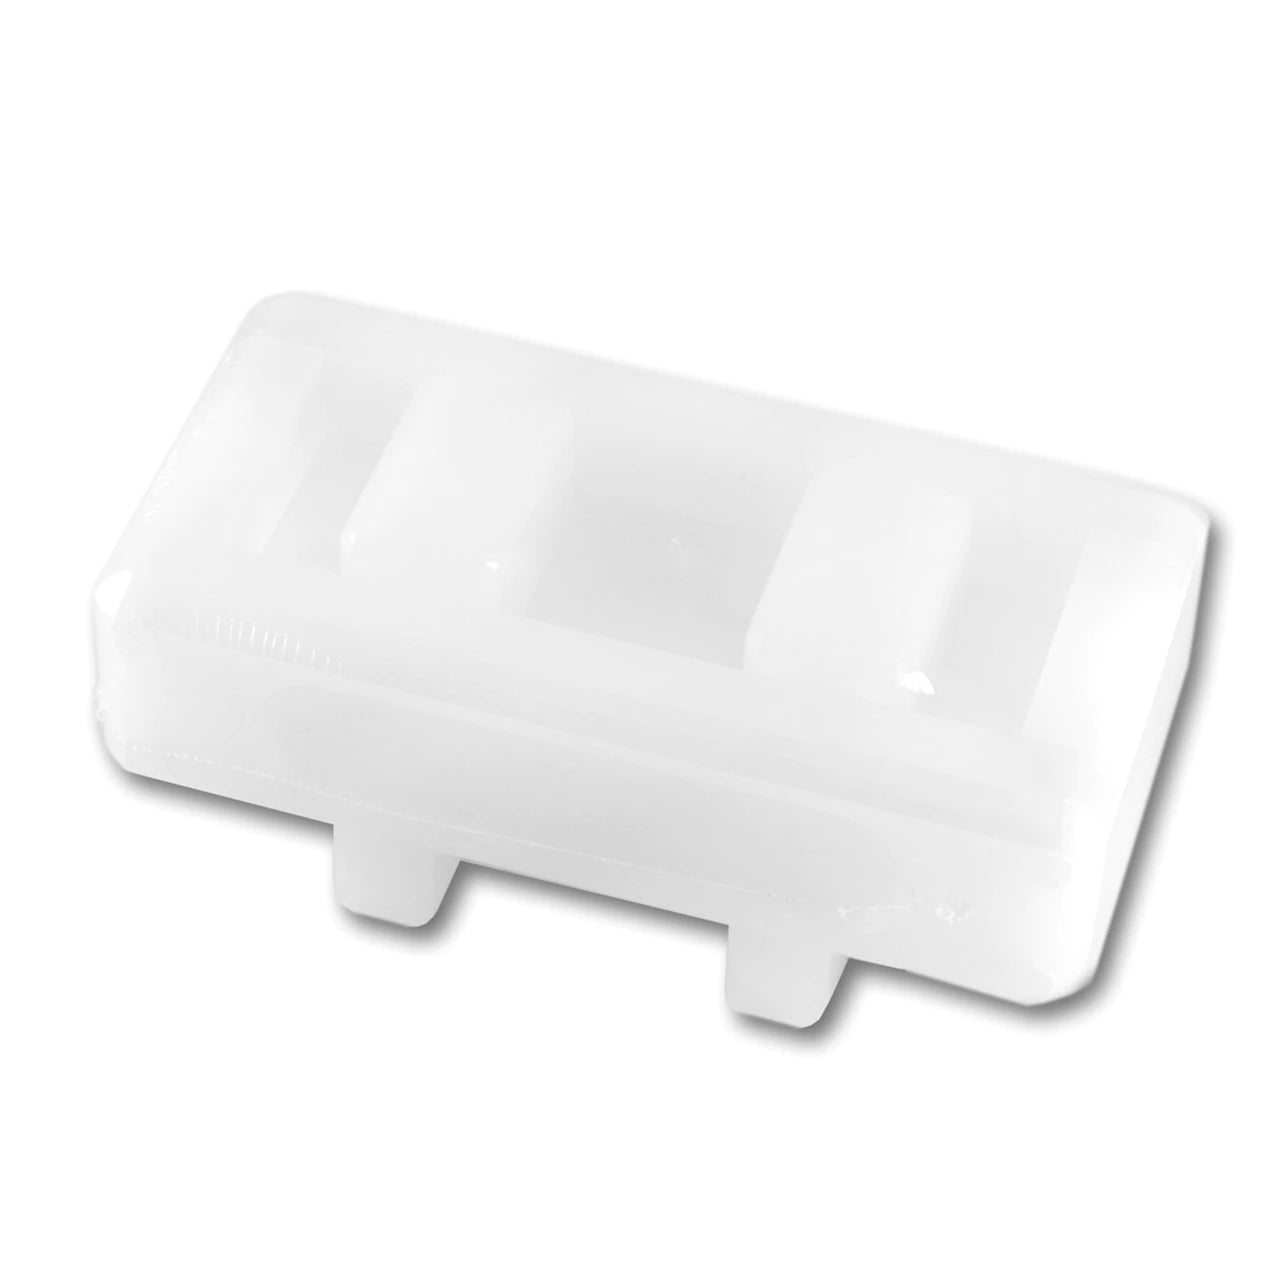 Plastic Sushi Mold for Battera Sushi (SKU: 91197)